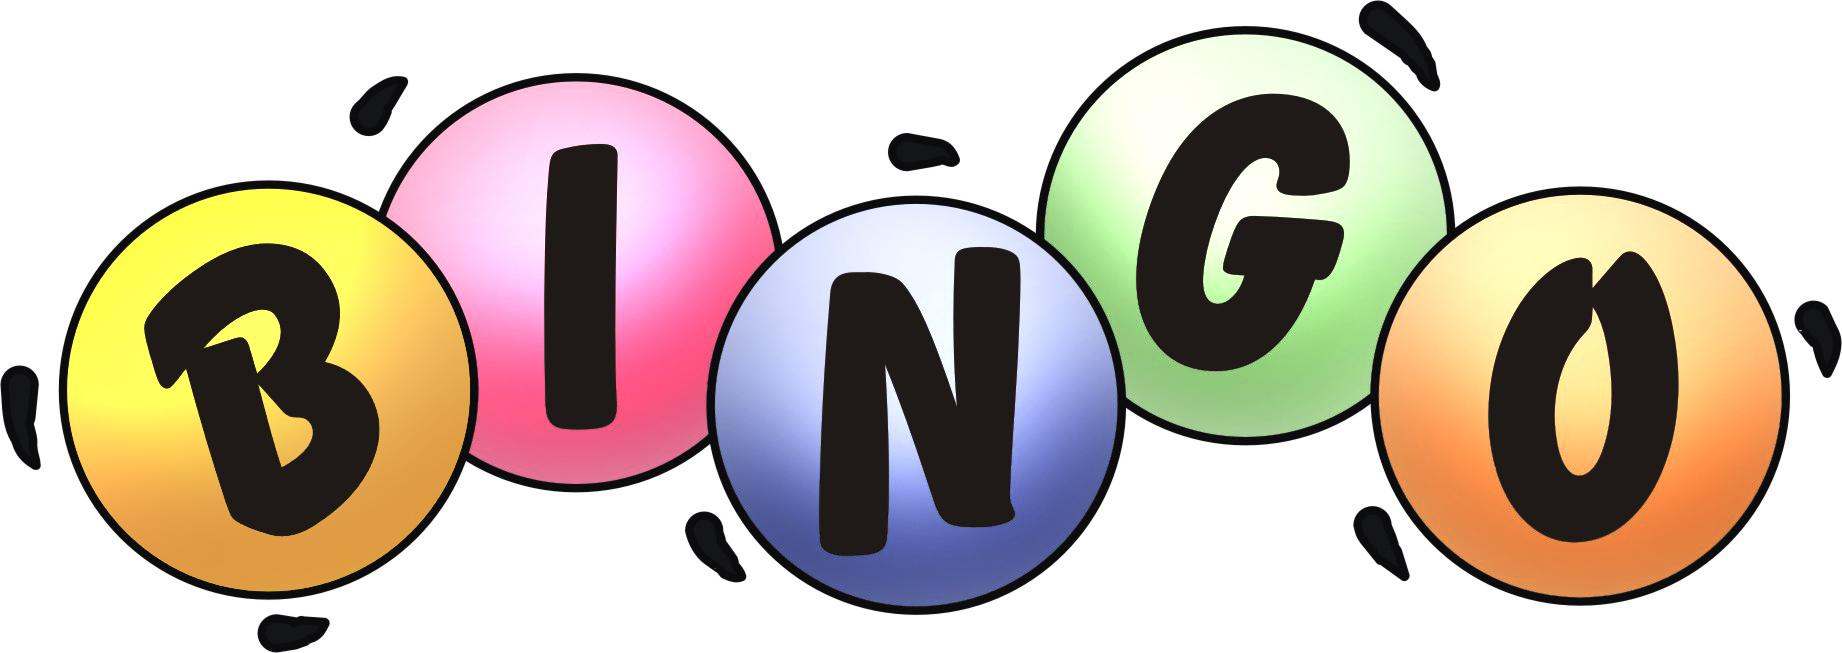 Bingo Cancelled On Friday 3 15 And Friday 2 29   Pelhamseniorsblog